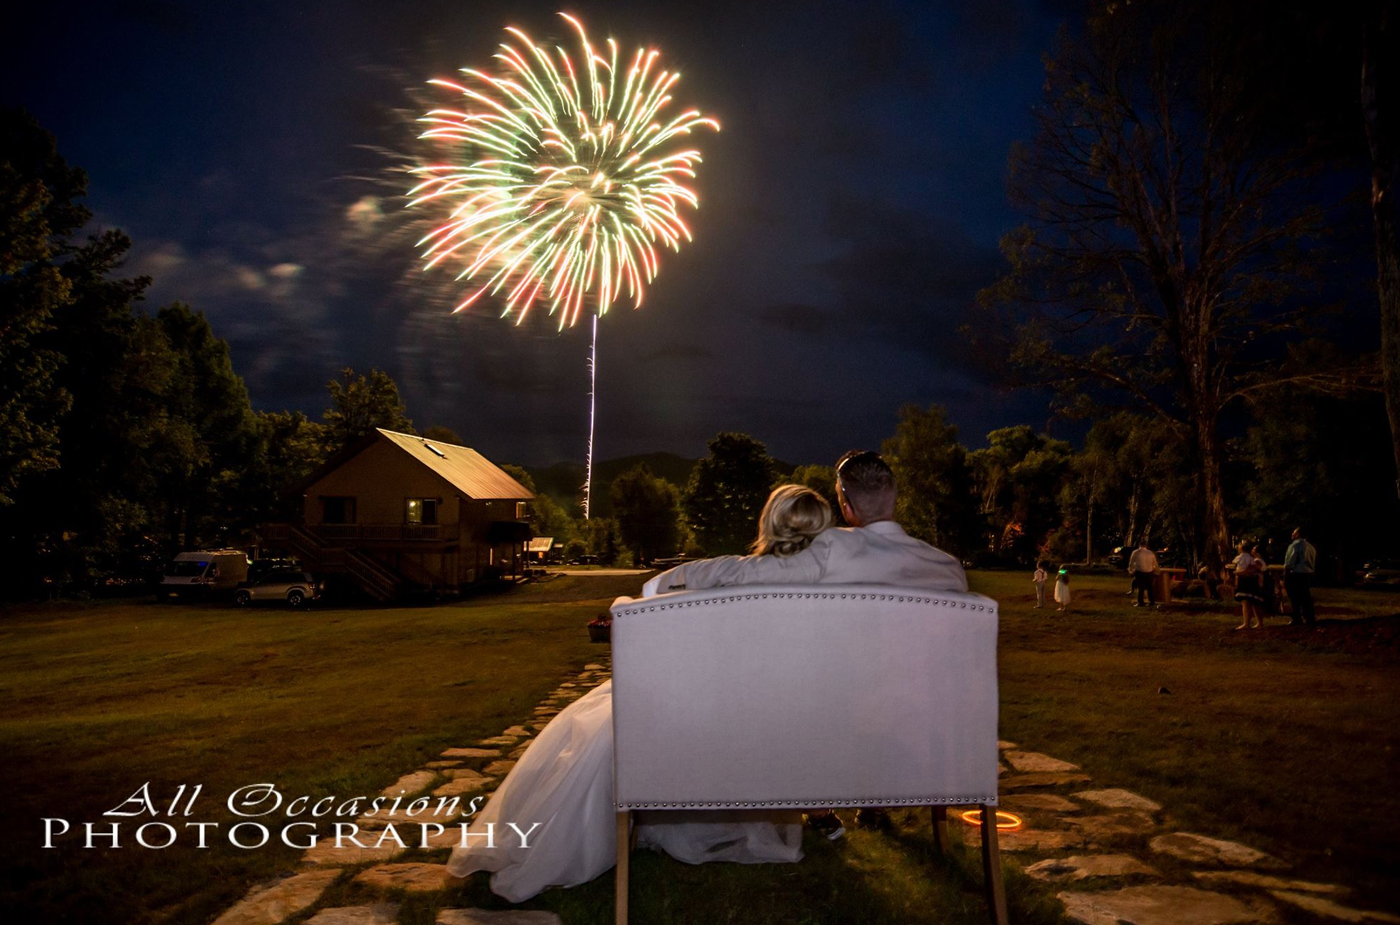 All Occasions Photography Albany NY - Wedding Photography Fireworks at Night